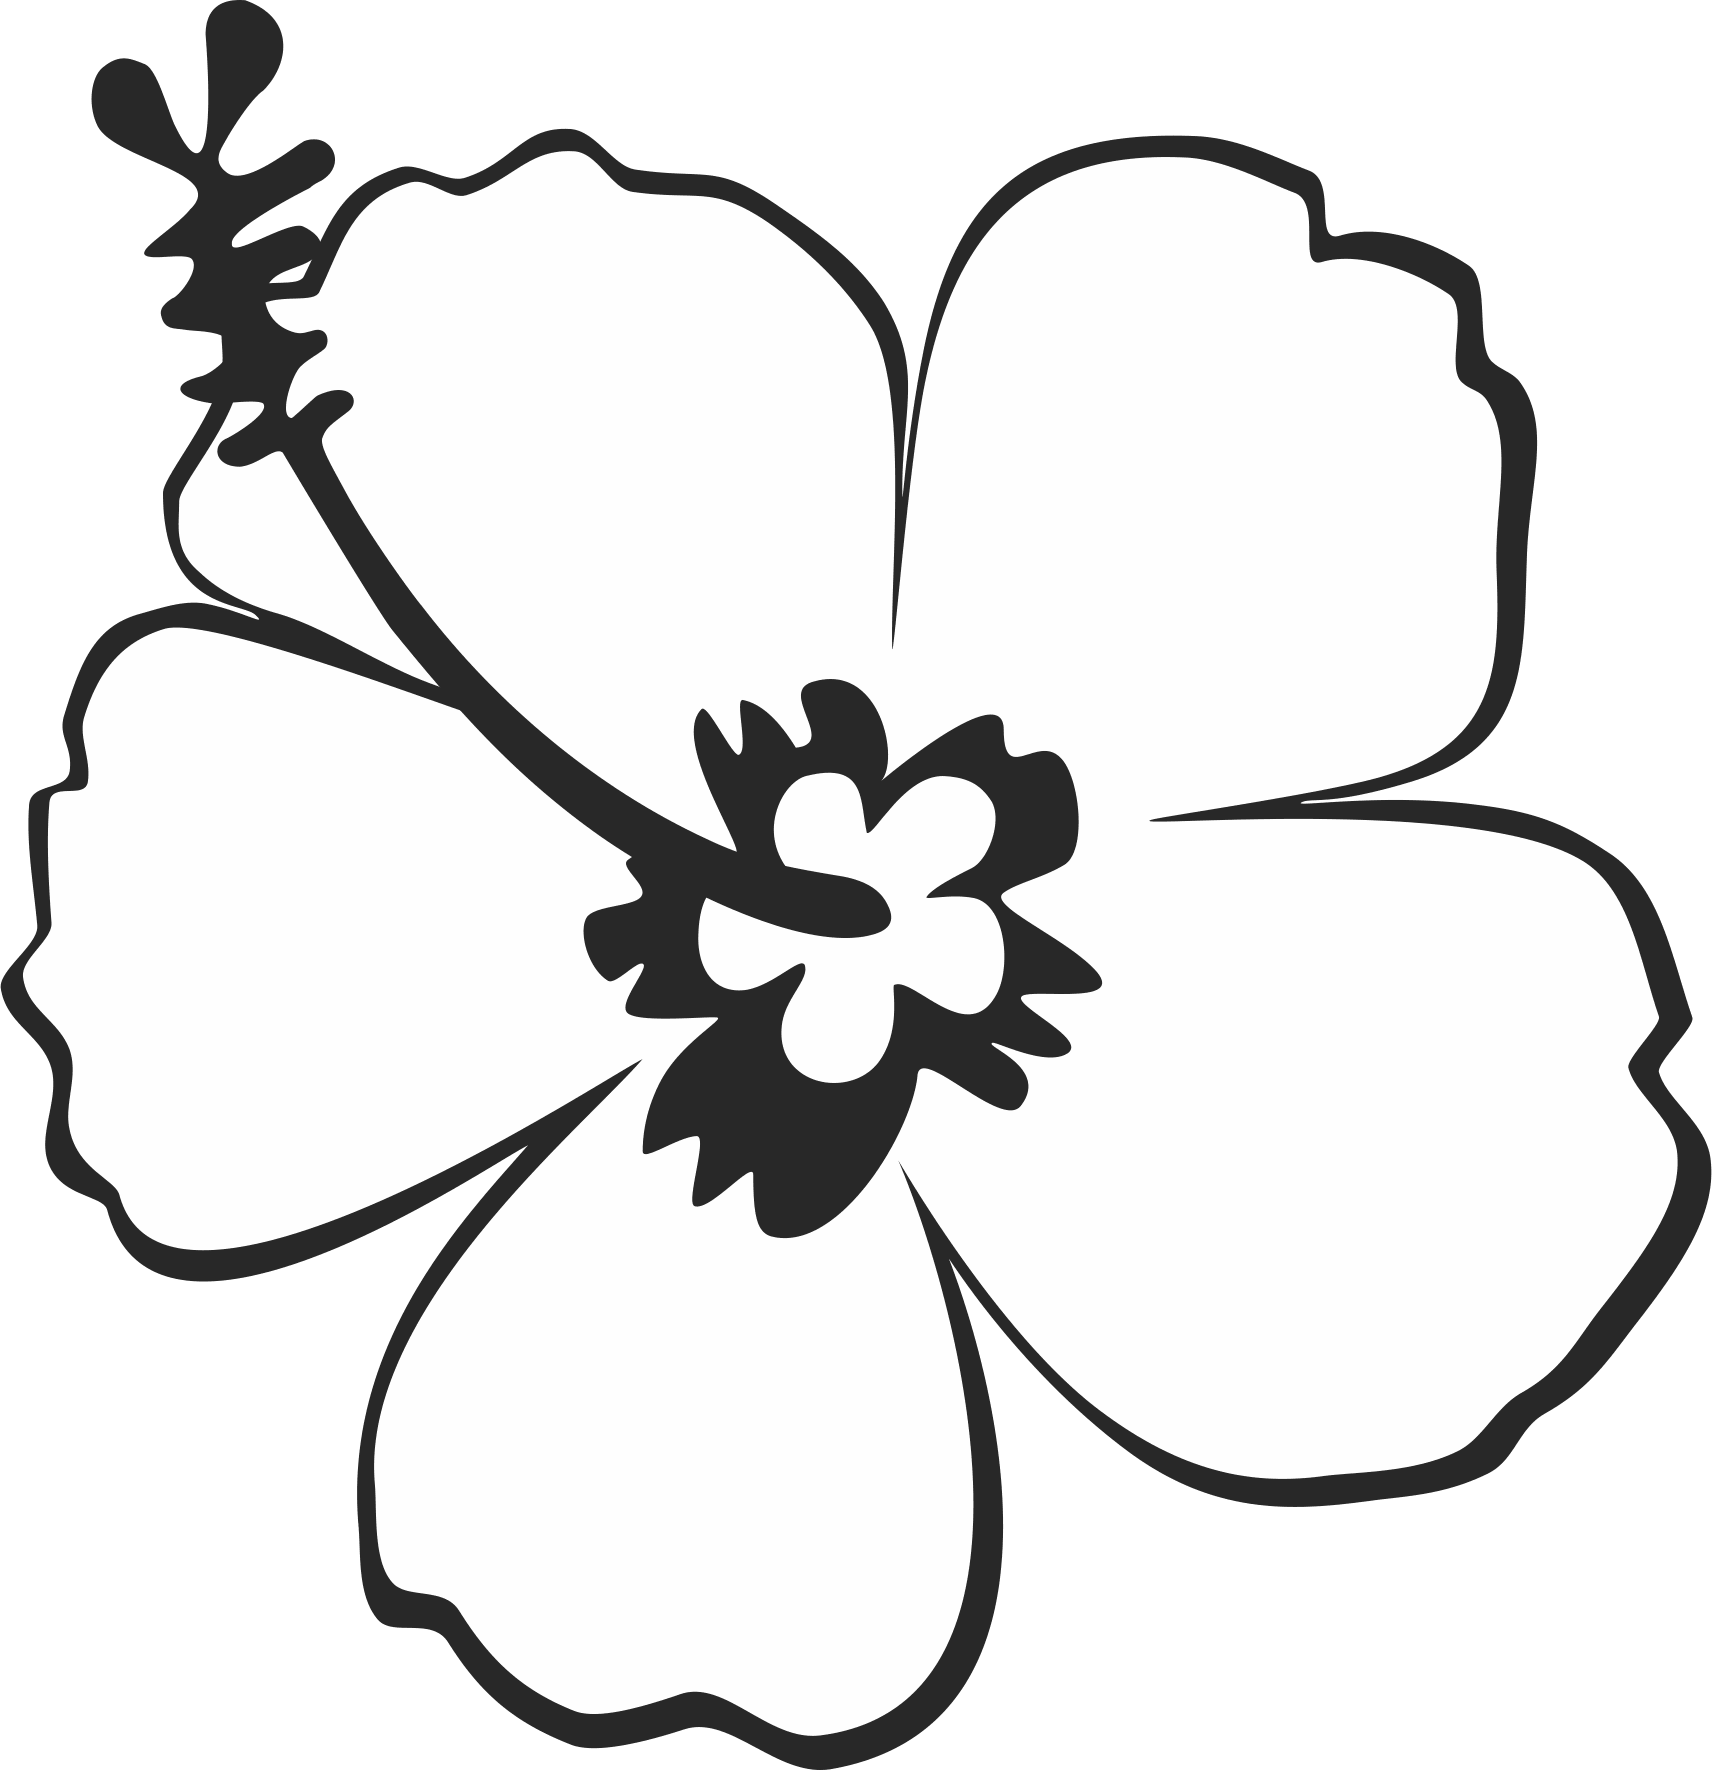 Outline Clipart Hibiscus Outline Hibiscus Transparent Free For Download On Webstockreview 2020